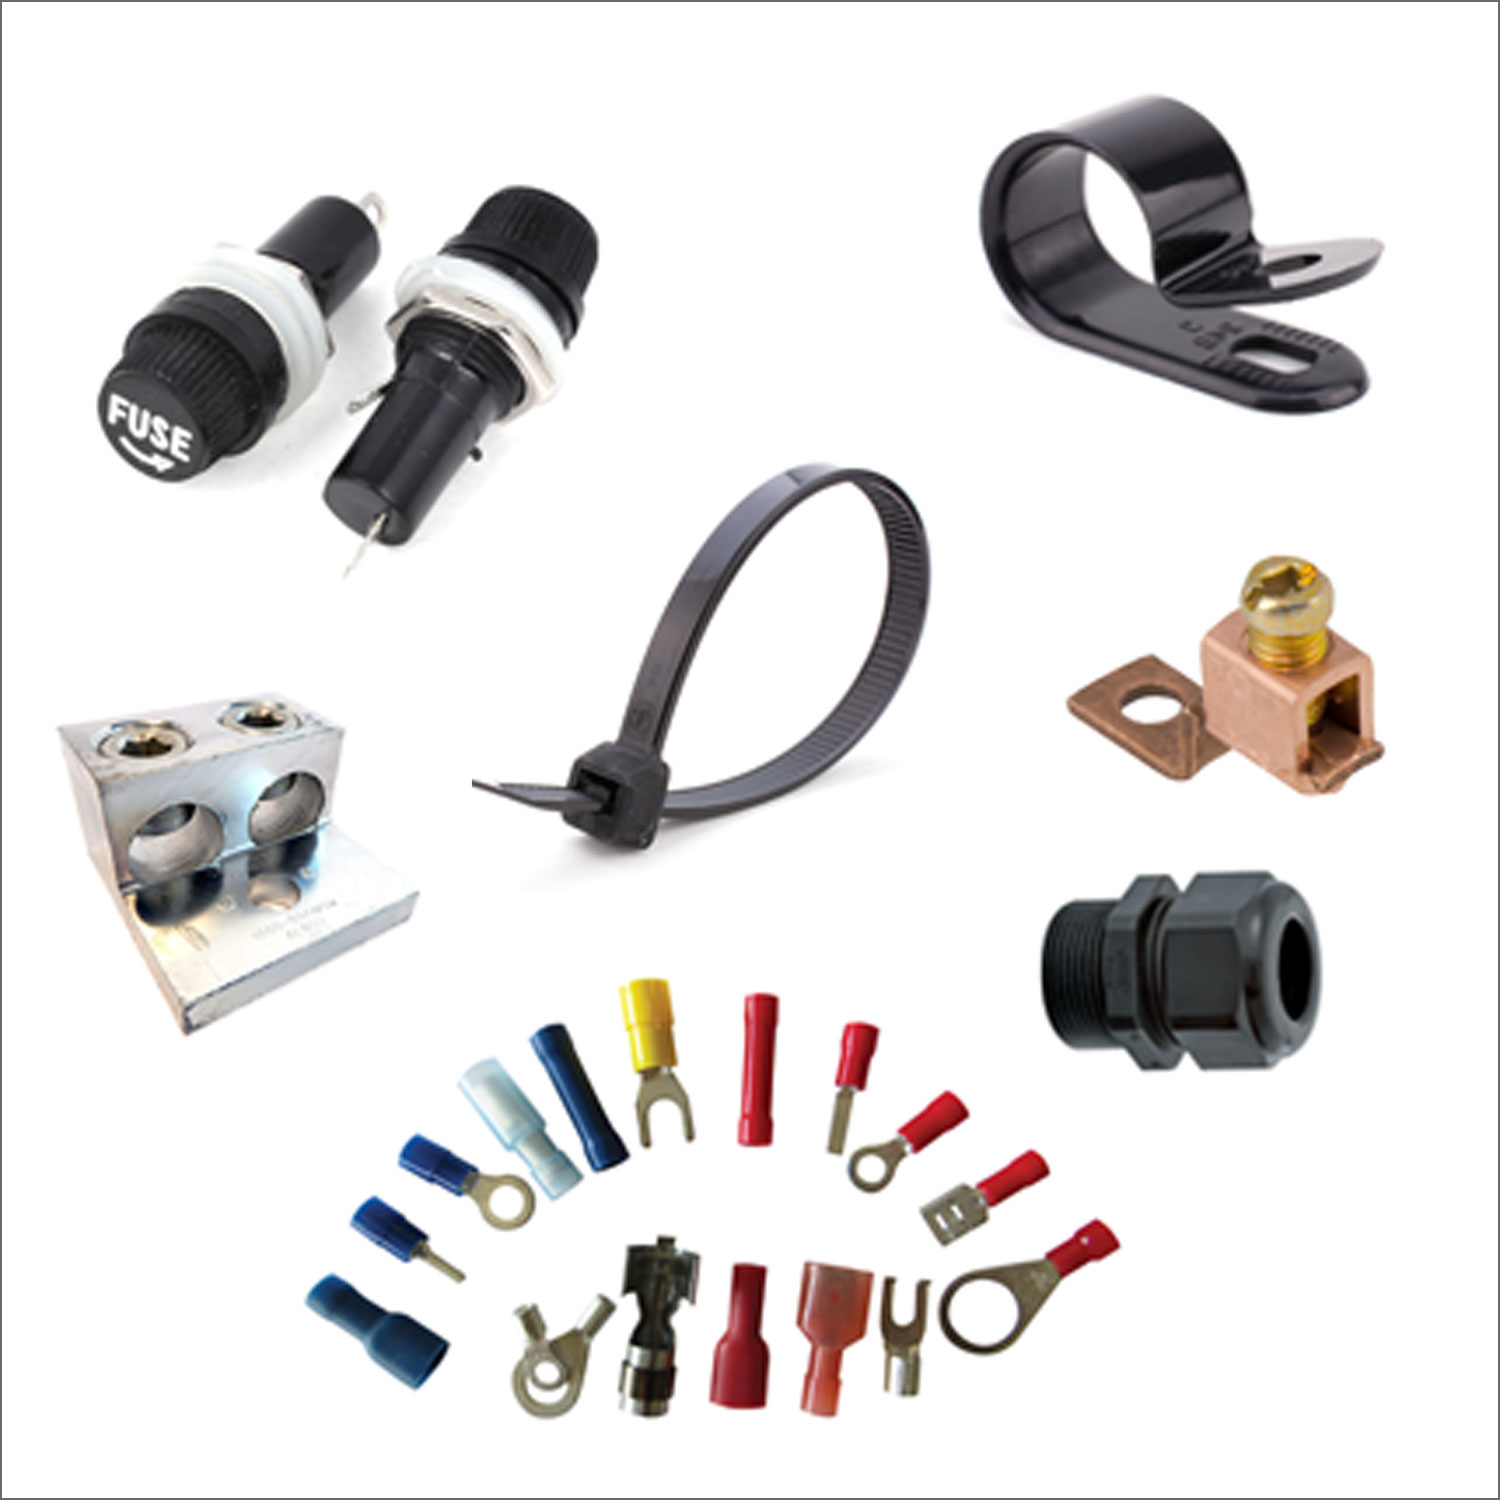 Electrical and Mechanical Hardware